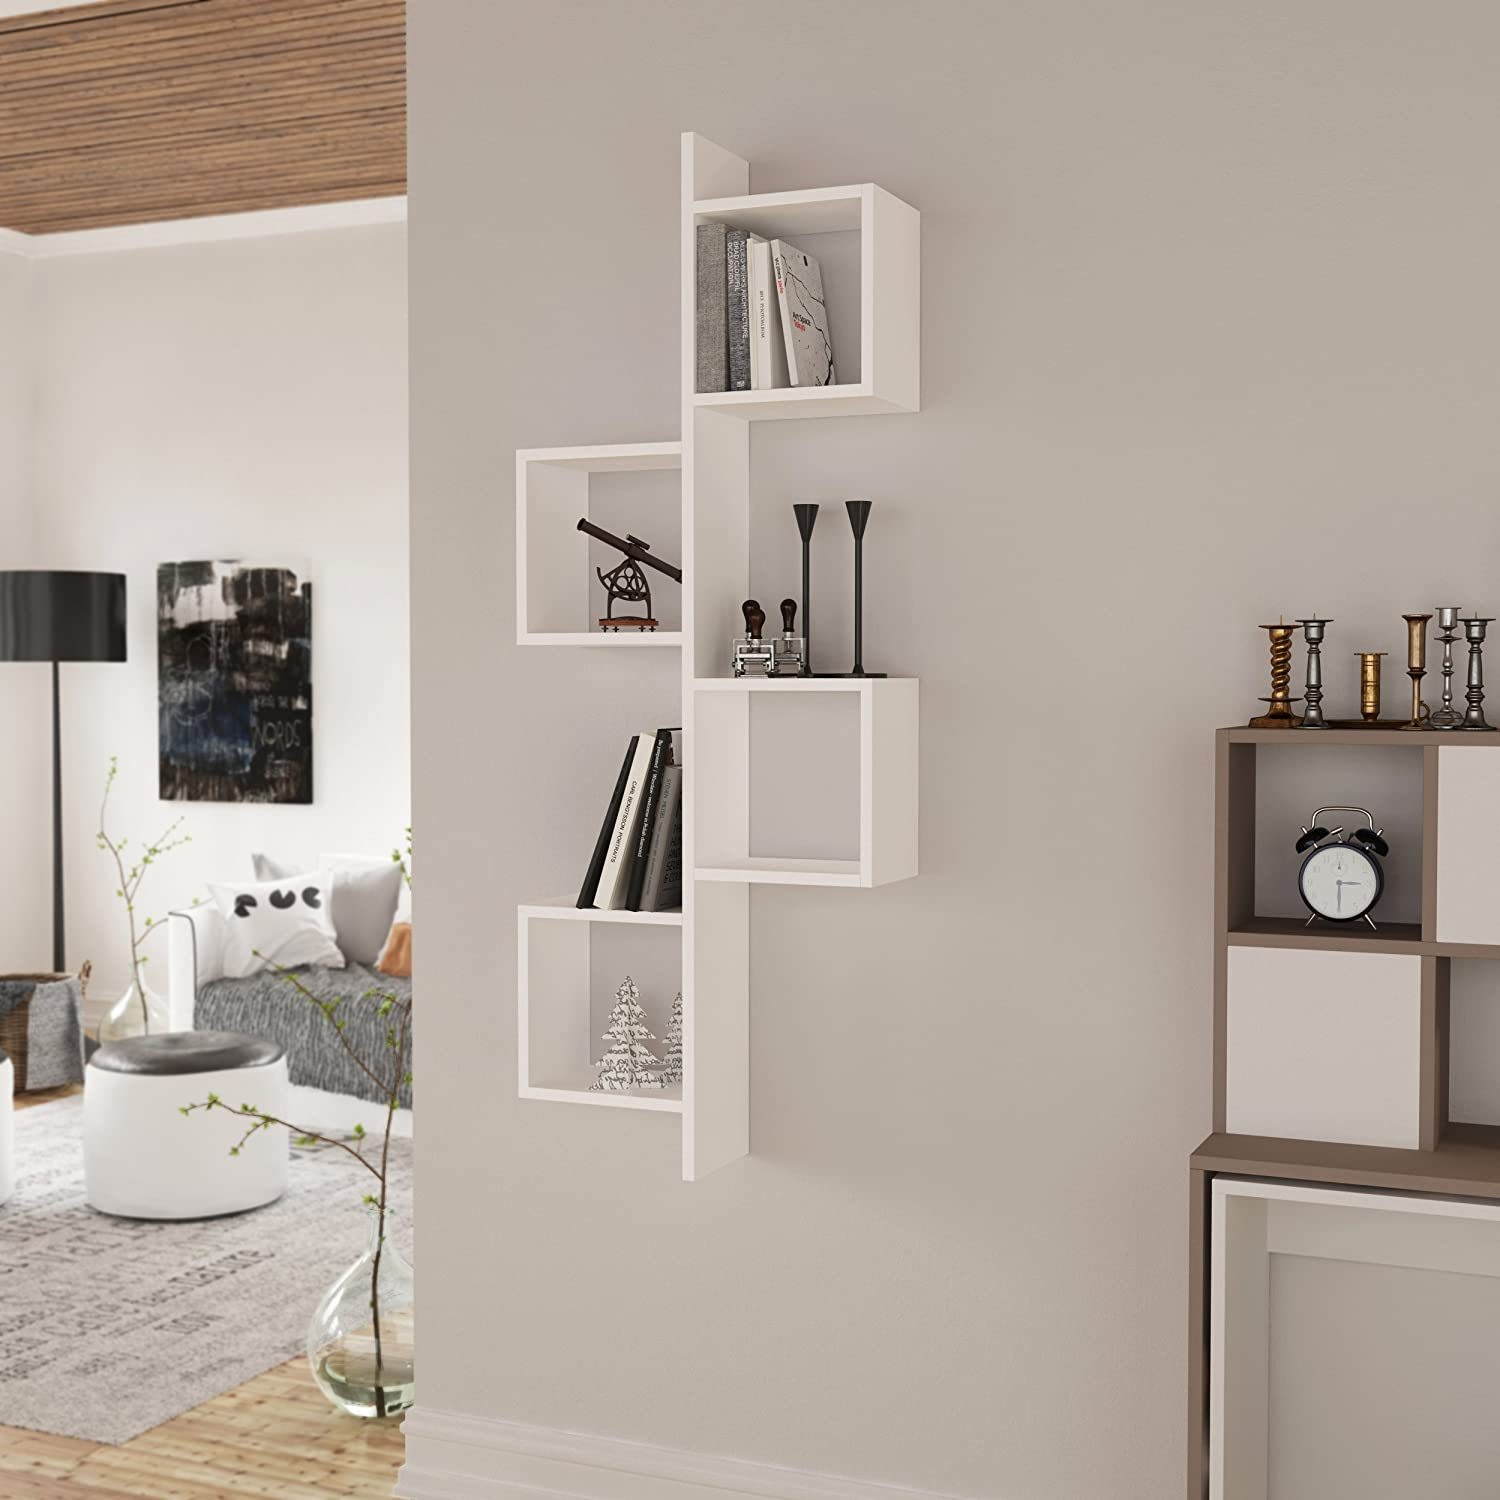 Homitis Tremendous Floating Wall Shelf, White, Book Shelf, Space Saver,